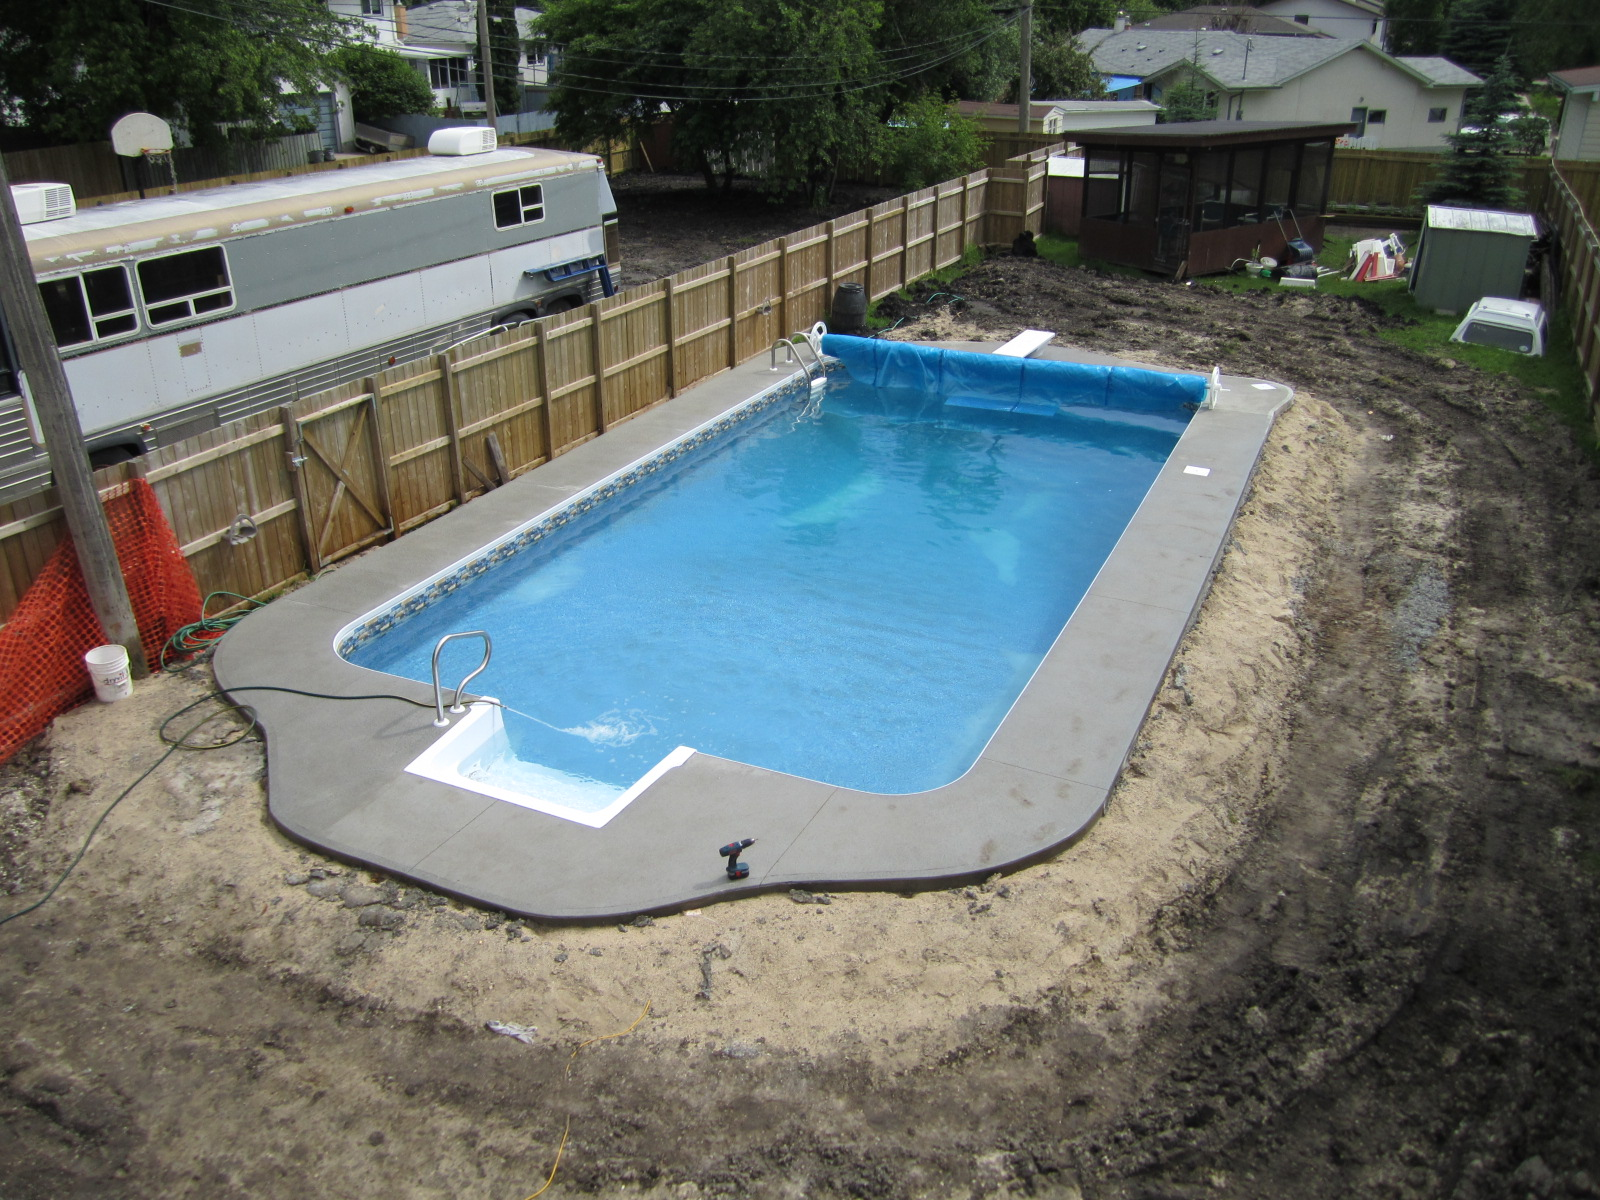 Pictures of 16x32 inground pool joy studio design for Images of inground swimming pools